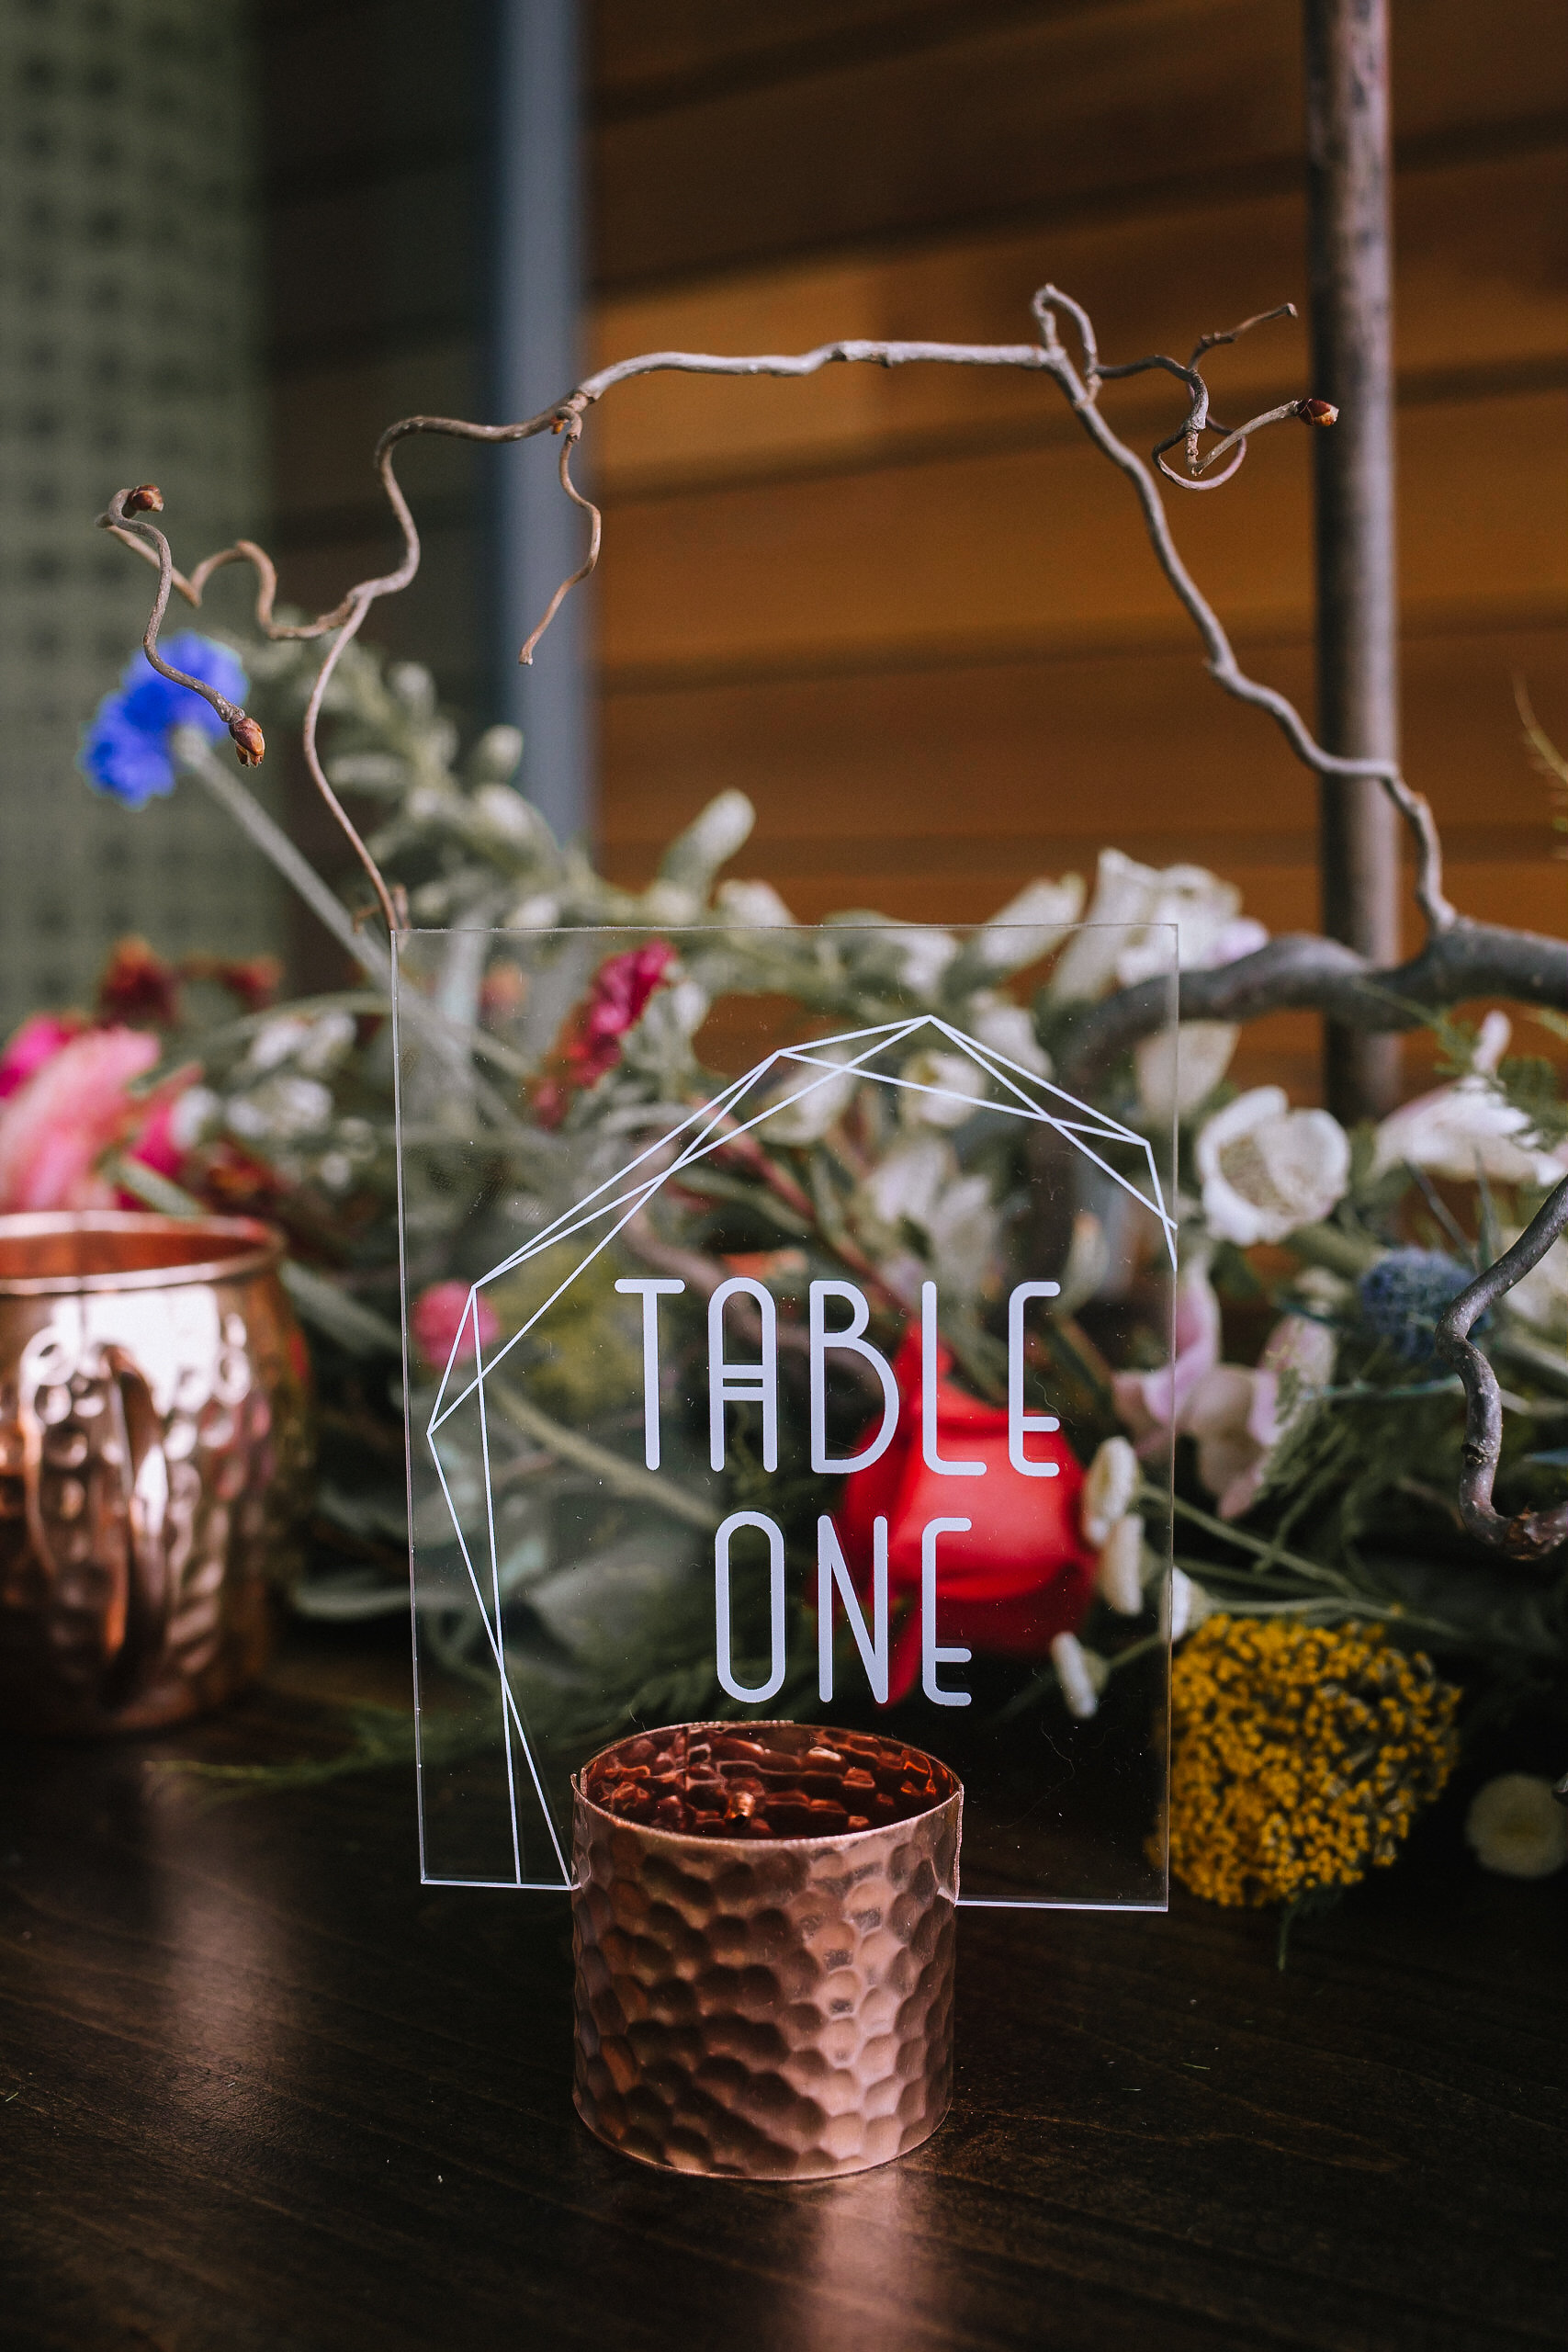 Acrylic table numbers from Purple Wagon Designs.